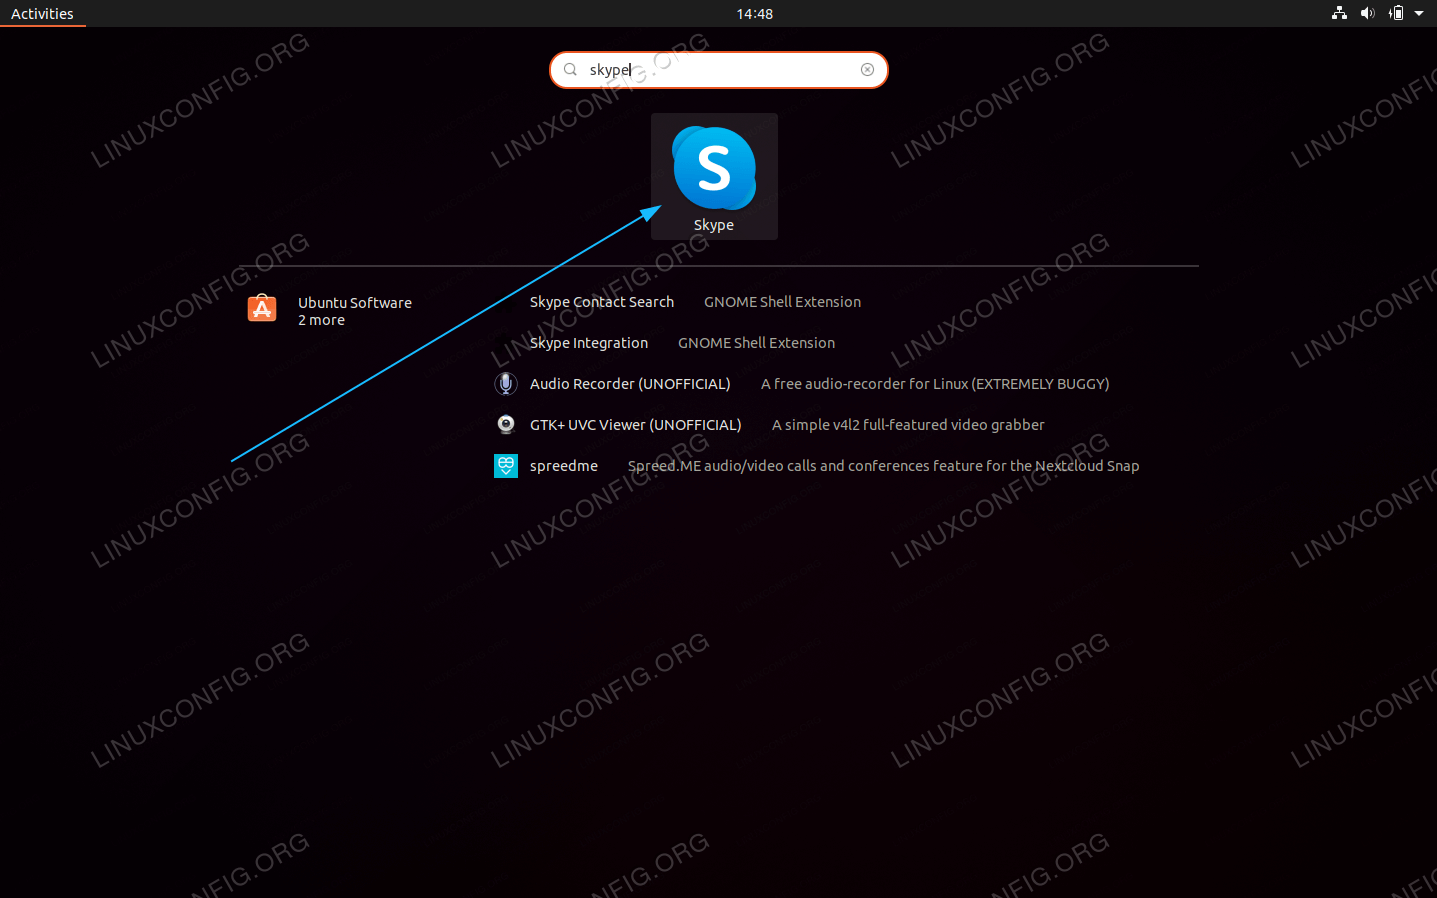 Start Skype on Ubuntu 20.04 Focal Fossa Linux